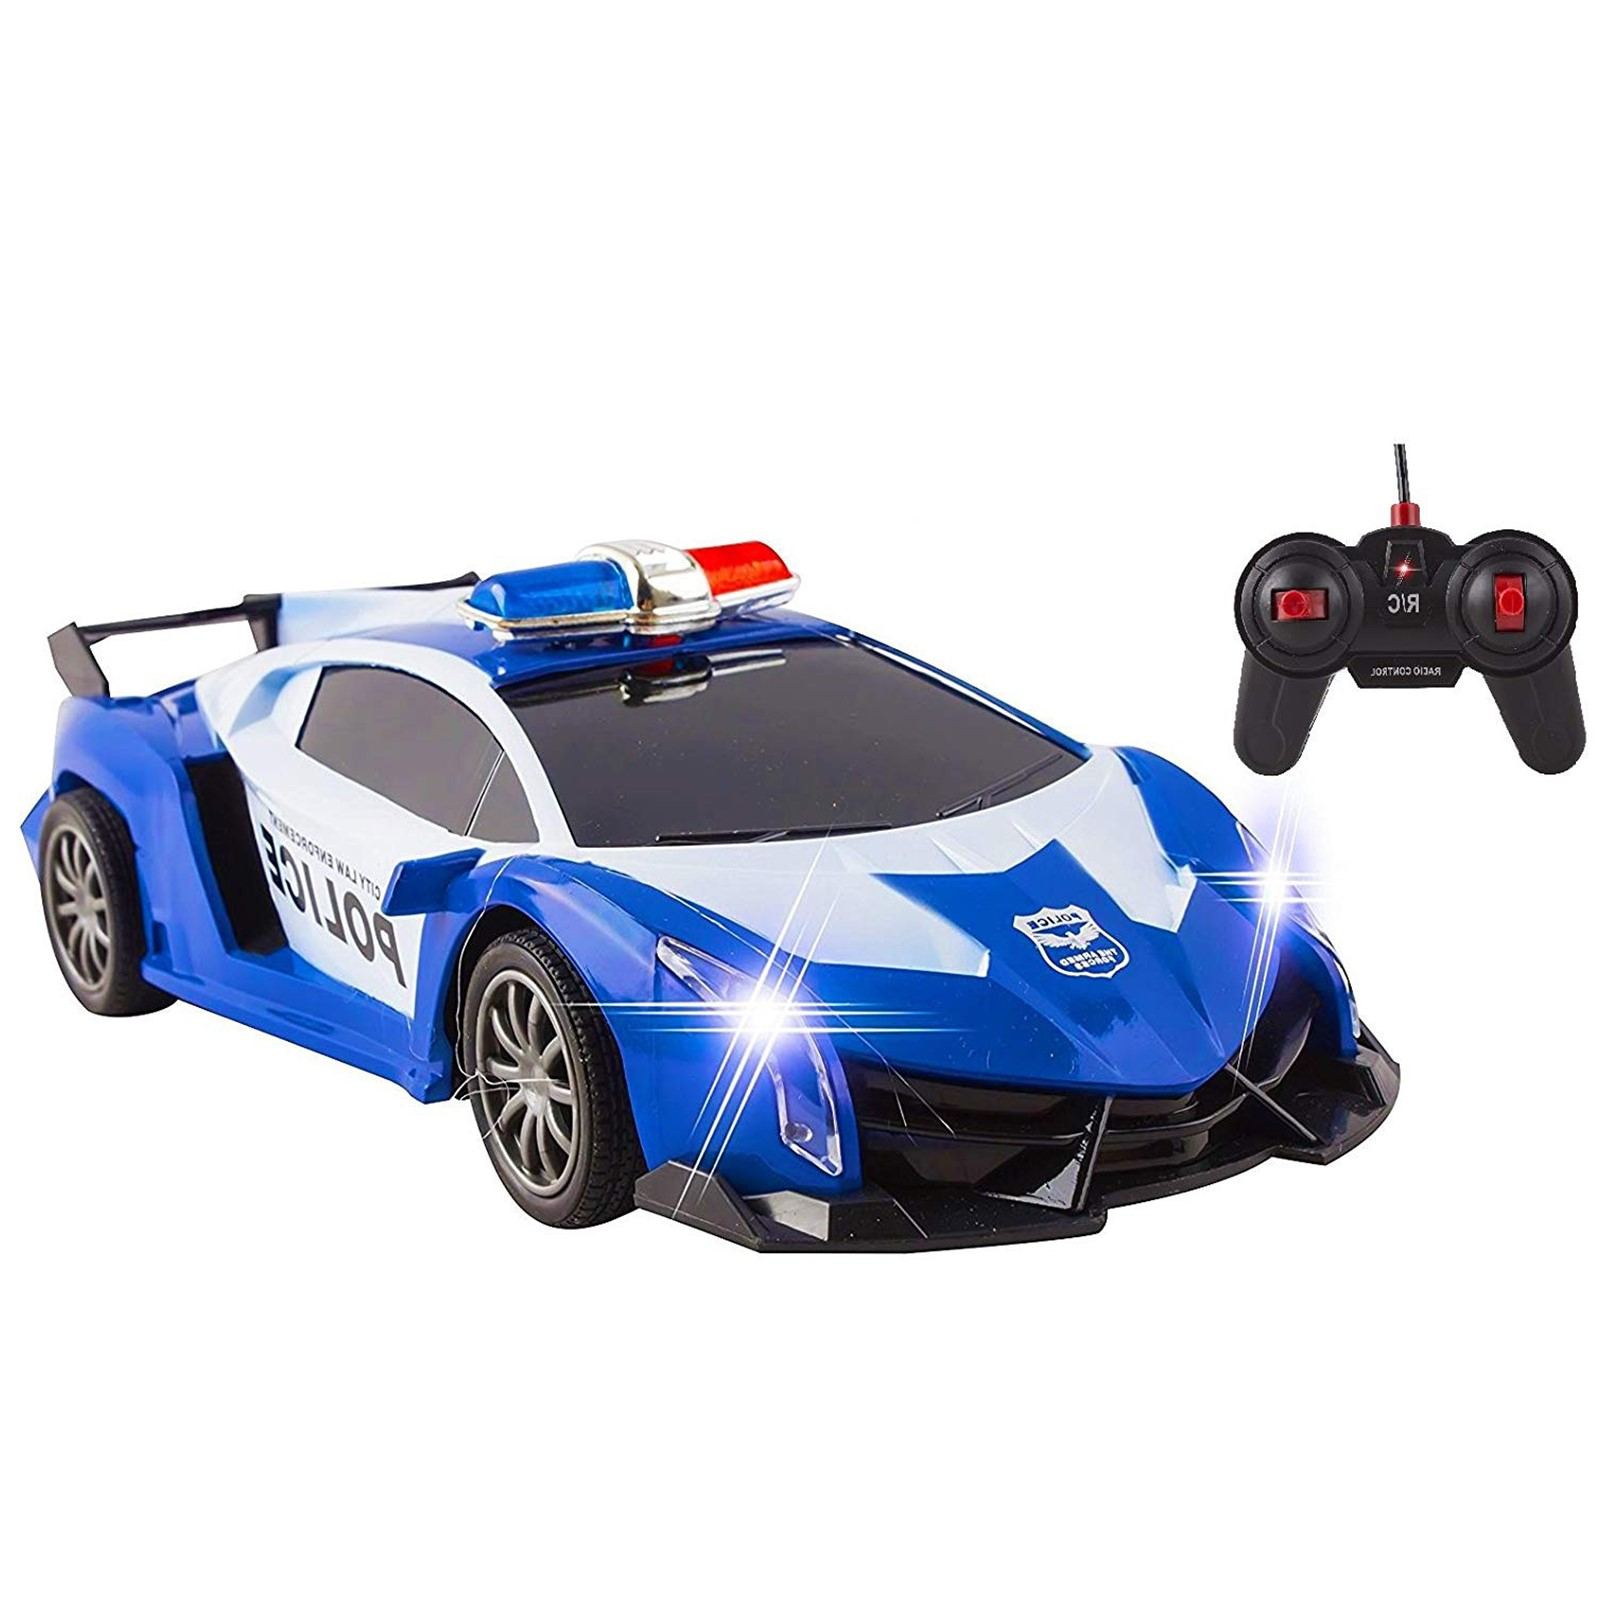 Police RC Car For Kids Super Exotic Large Remote Control Easy To Operate Toy Sports Car with Working Headlights And Sirens Perfect Cop Race Vehicle (Blue)